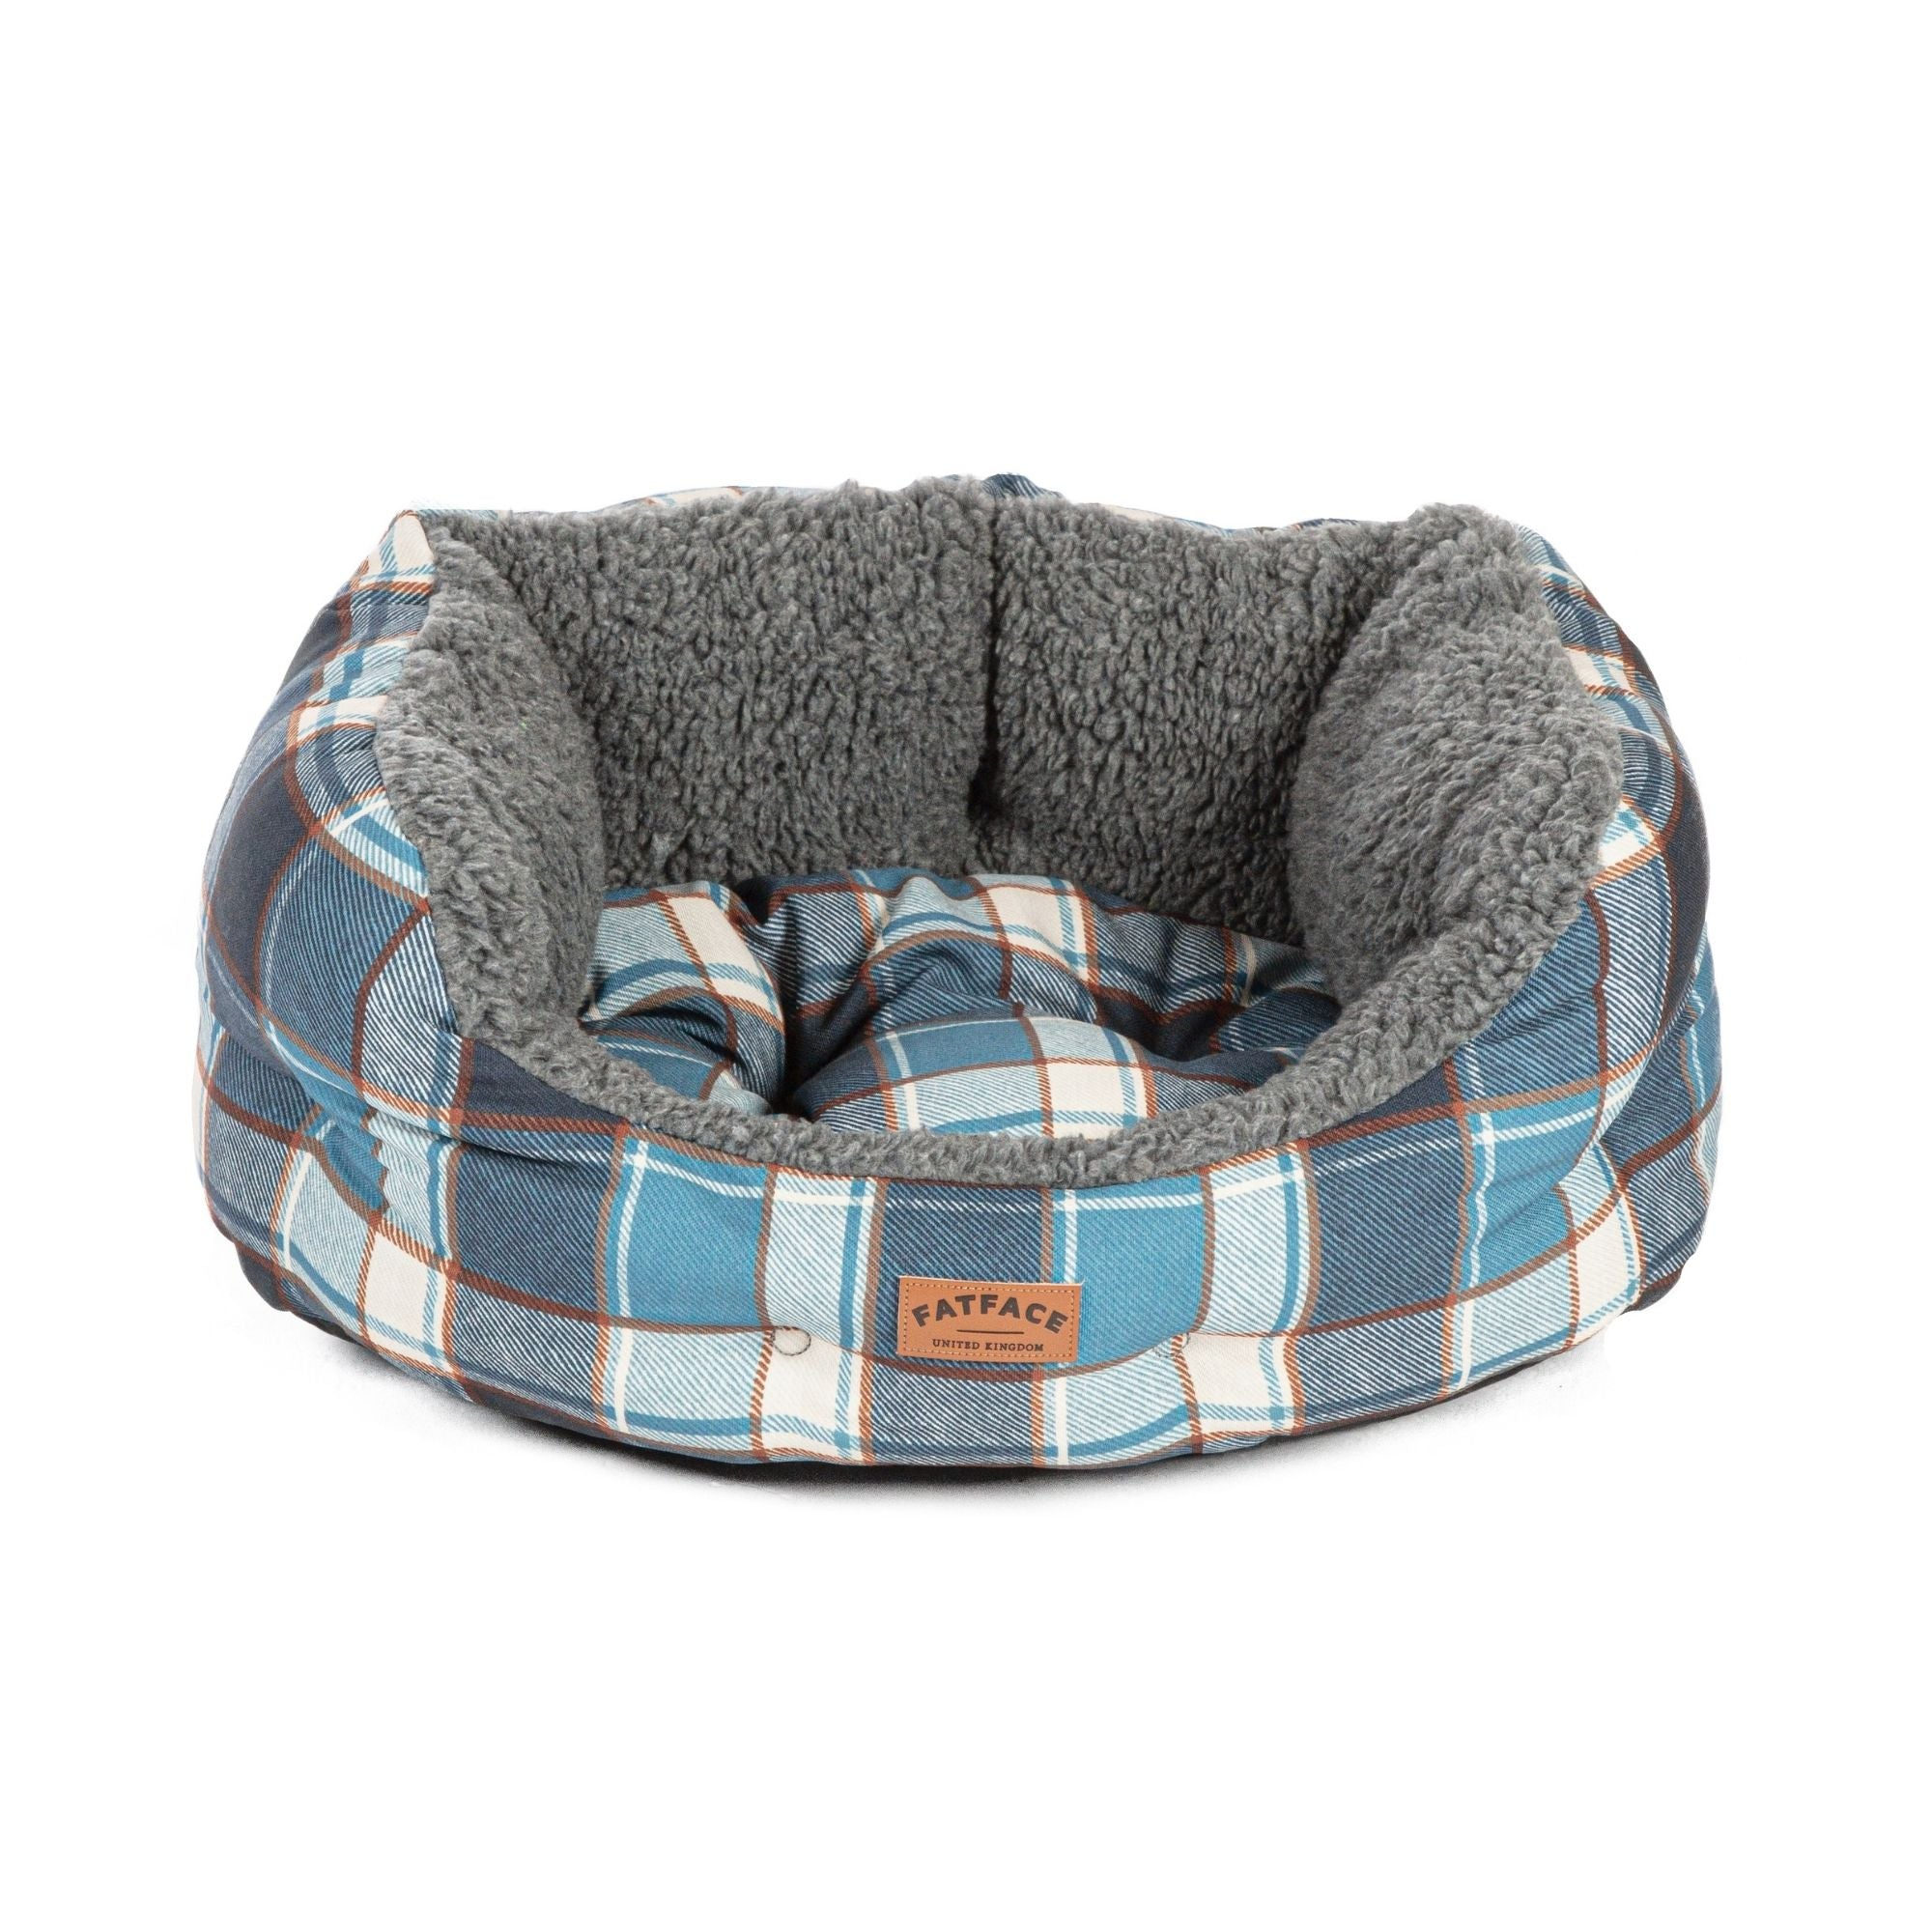 FatFace Fleece Check Deluxe Slumber Bed